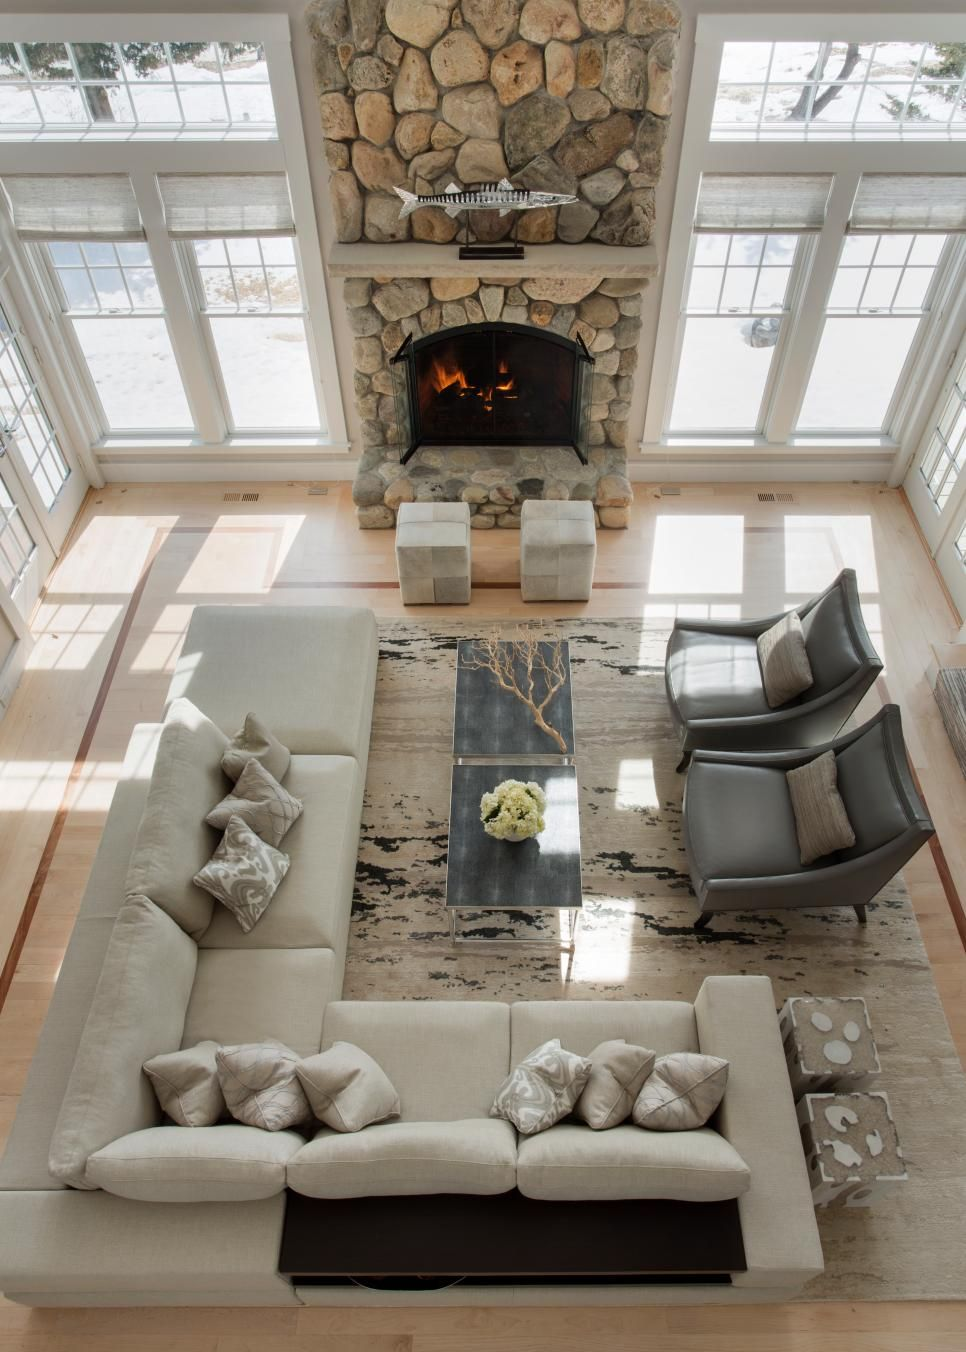 A Dramatic Floor To Ceiling Stone Fireplace Is The Focal Point In